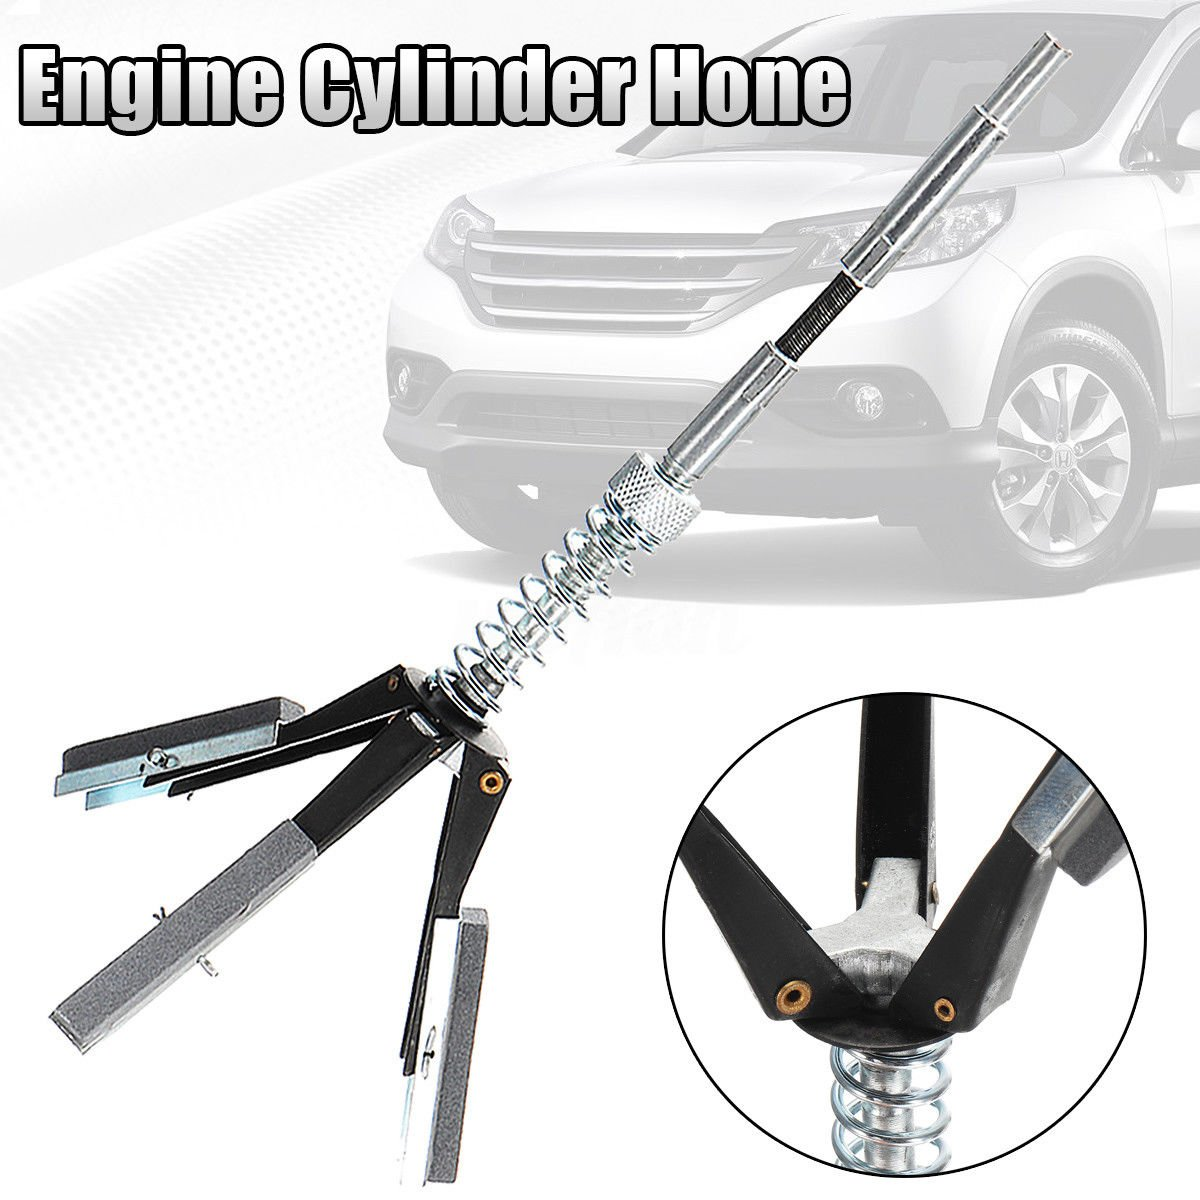 """Dracarys 2 Engine Cylinder Hone Adjustable Honing Tension Fits 1 1//4 to 3 1//2 Diameter Range Flexible Shaft with 3-220 Grit 2/"""" Stones"""